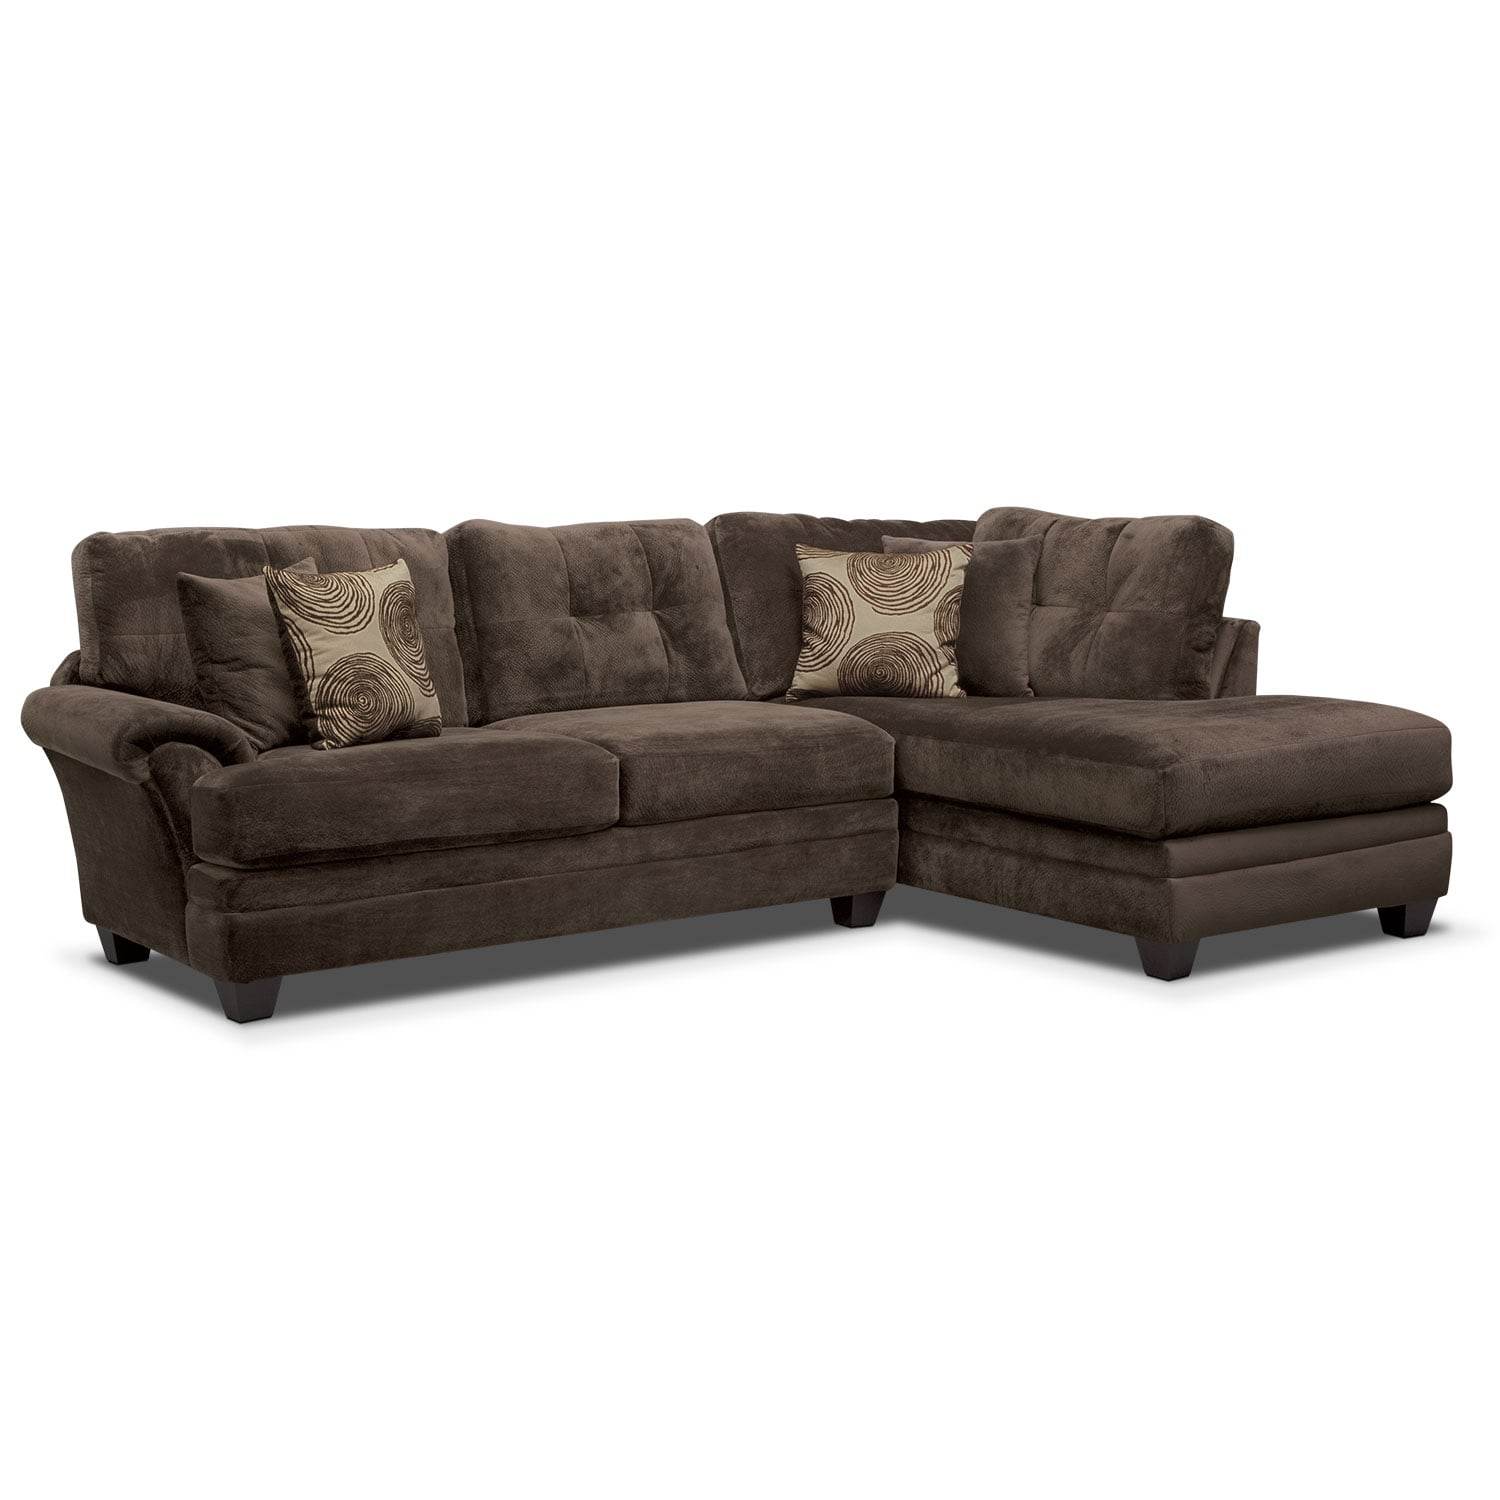 Cordelle 2 piece right facing chaise sectional chocolate for 2 piece sectional sofa with chaise